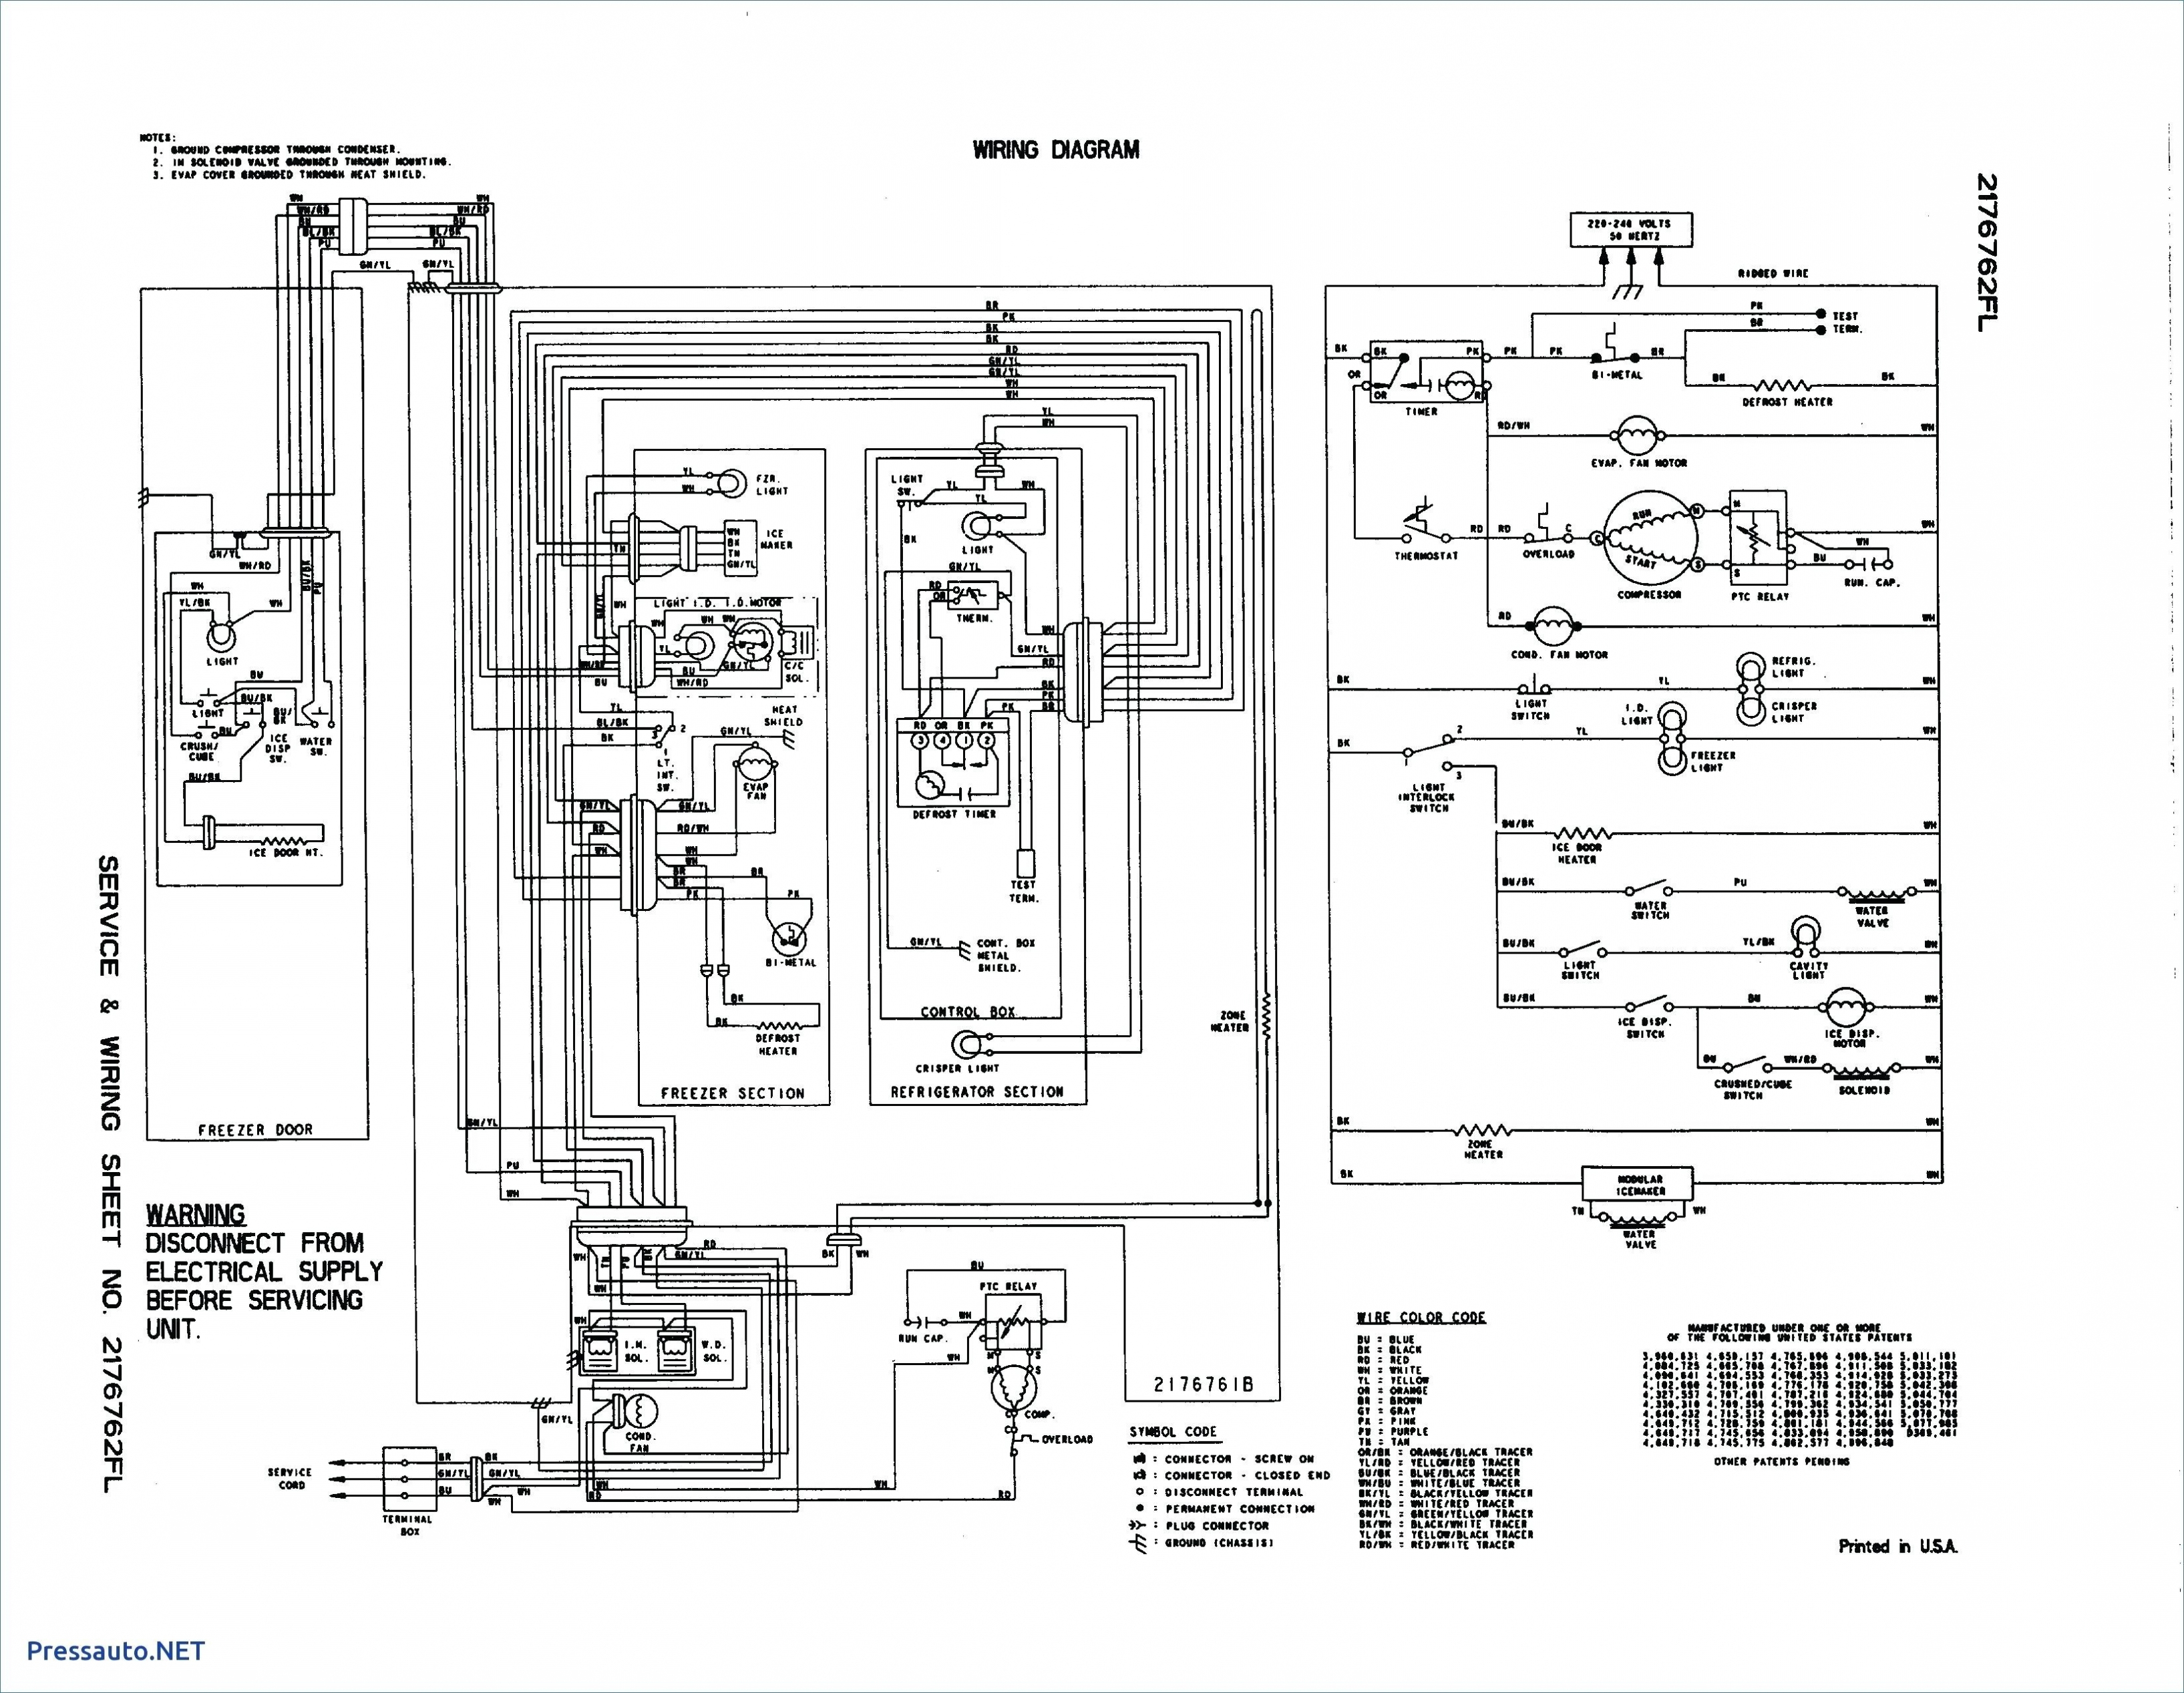 Travel Trailer Wiring Diagram – Travel Trailer Dual Battery Wiring - Trailer Battery Wiring Diagram